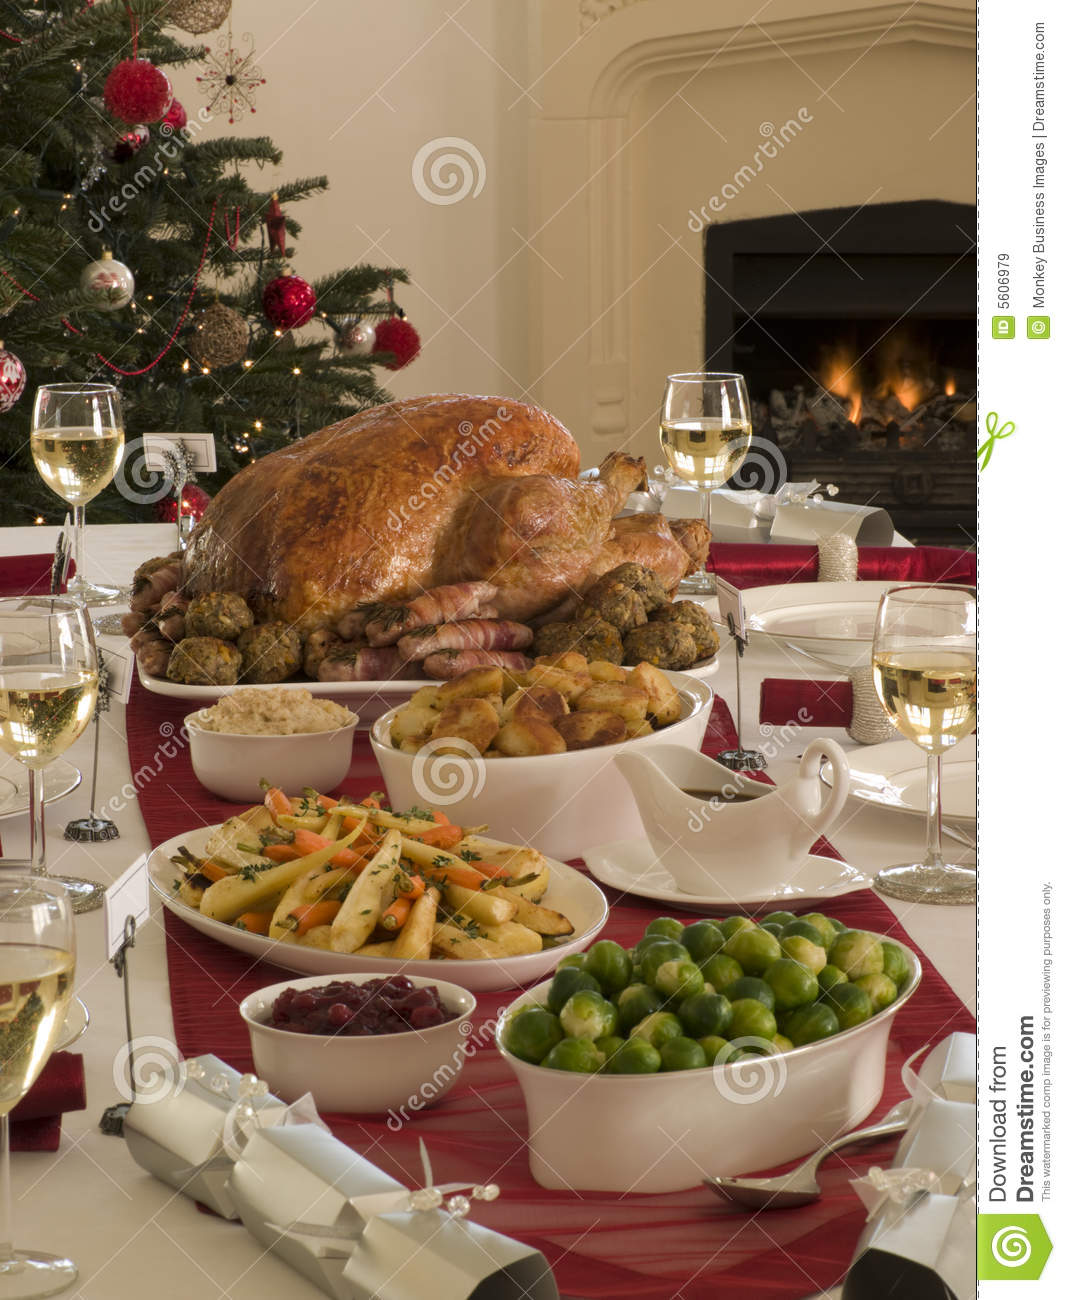 Roast Turkey Christmas Dinner Stock Image Image Of Cutlery